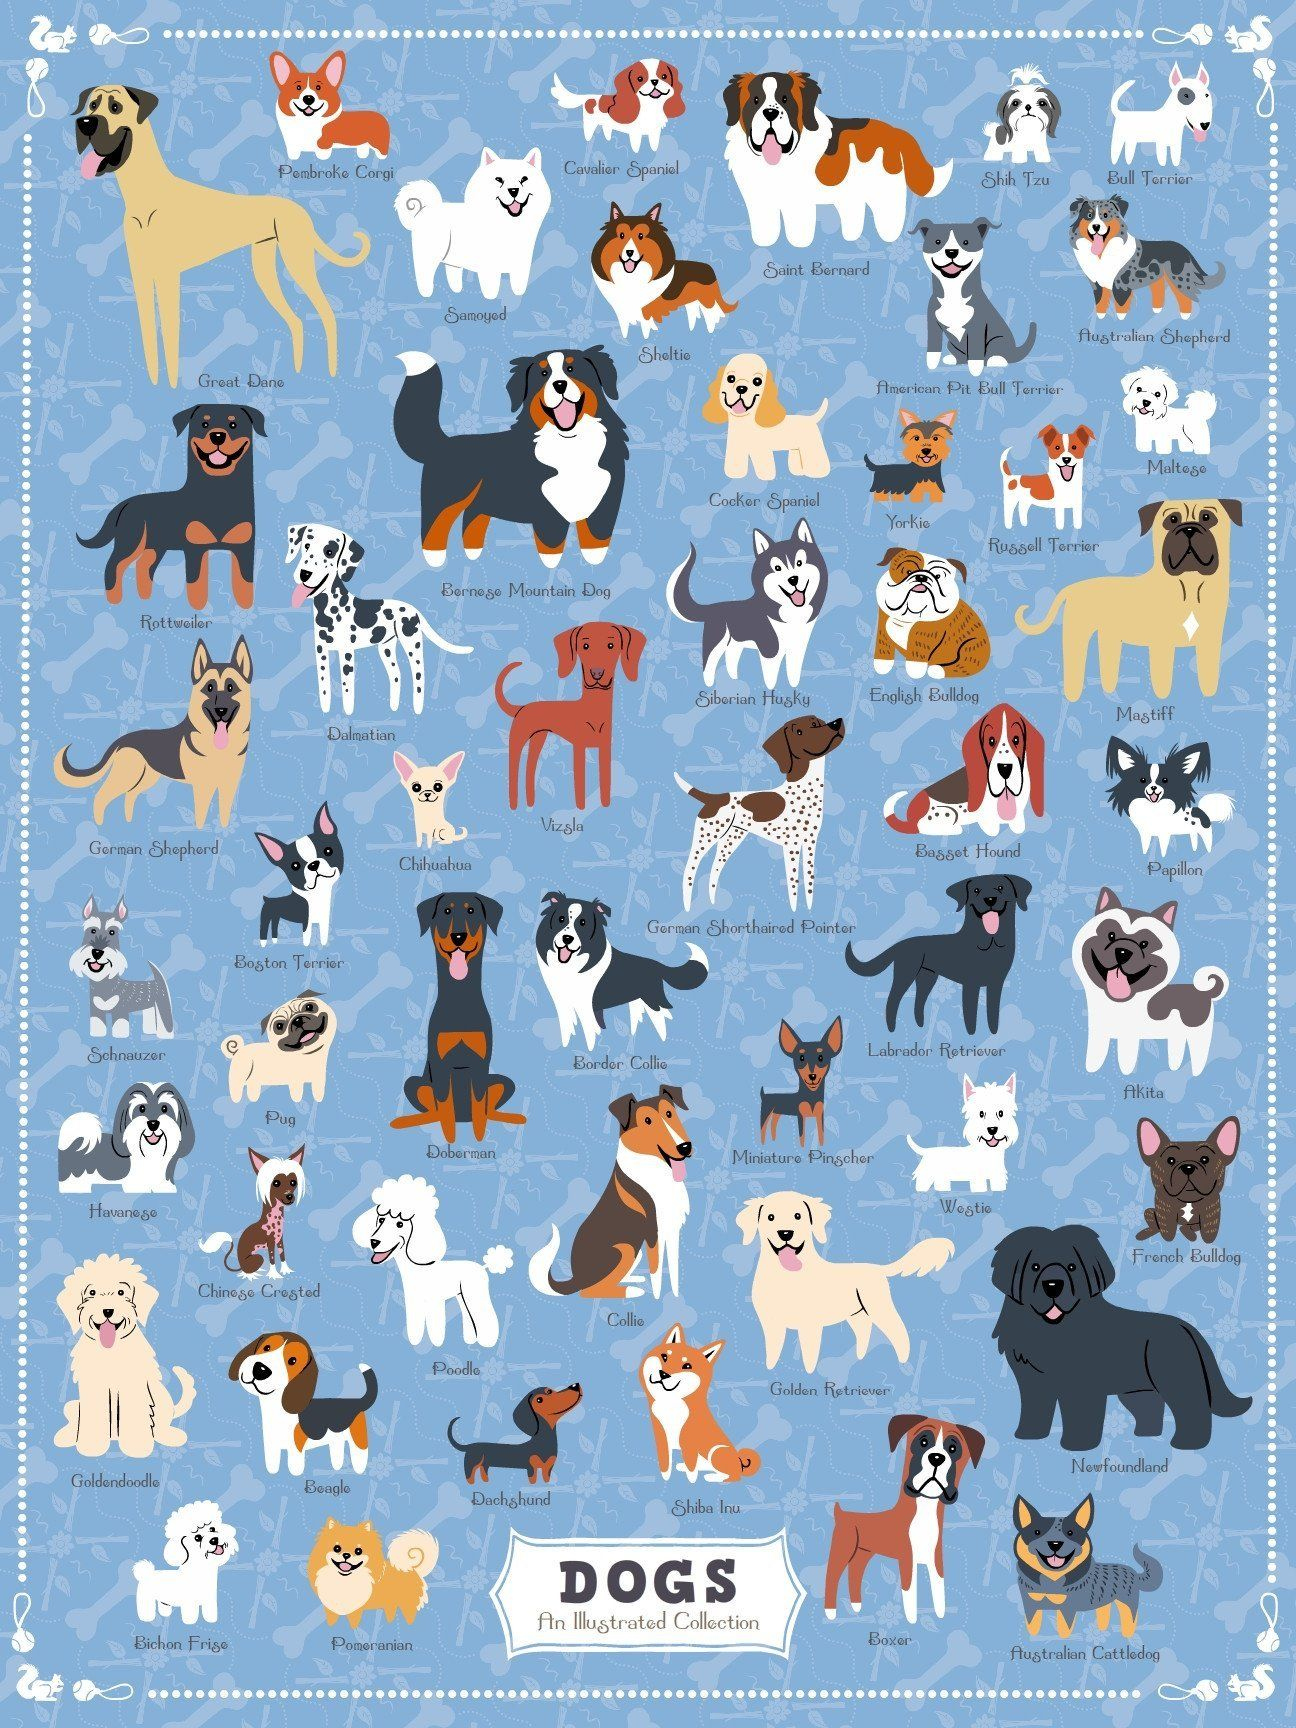 Dogs Of America 500 Piece Jigsaw Puzzle Cute Animal Drawings